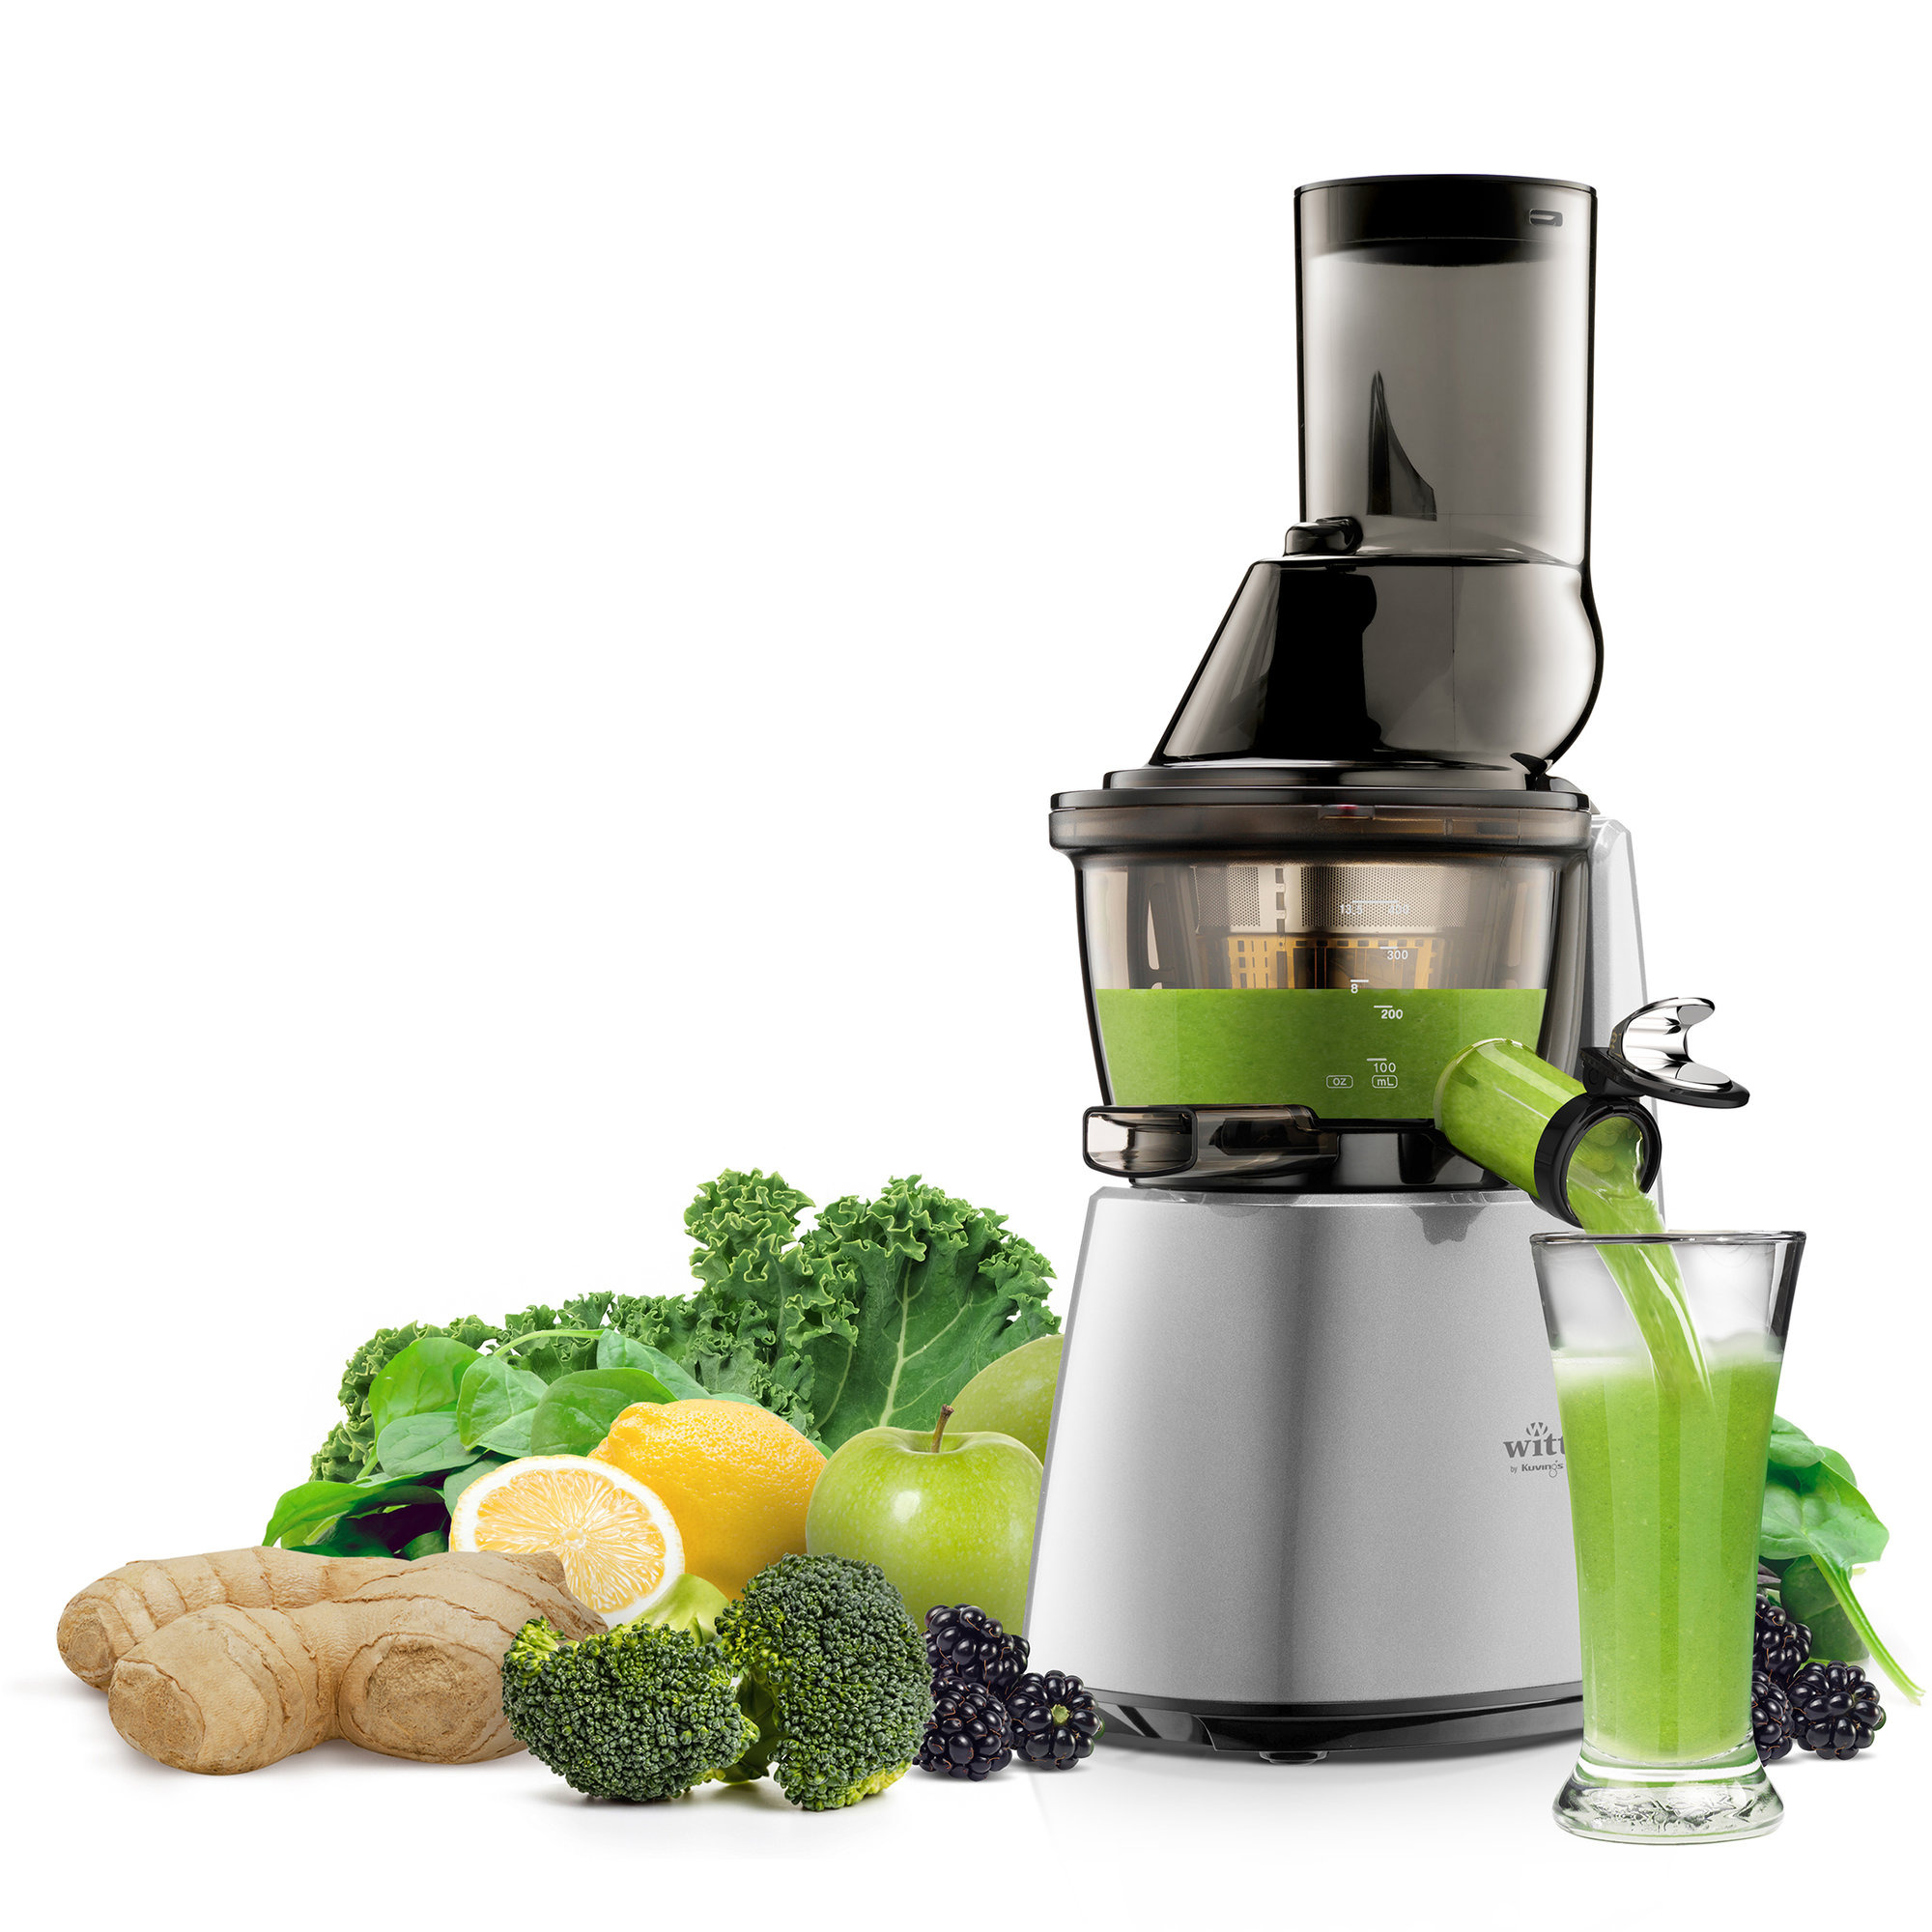 Witt Slow Juicer Tilbud : C9600 S Slow Juicer solv fra Witt by Kuvings Gratis Levering